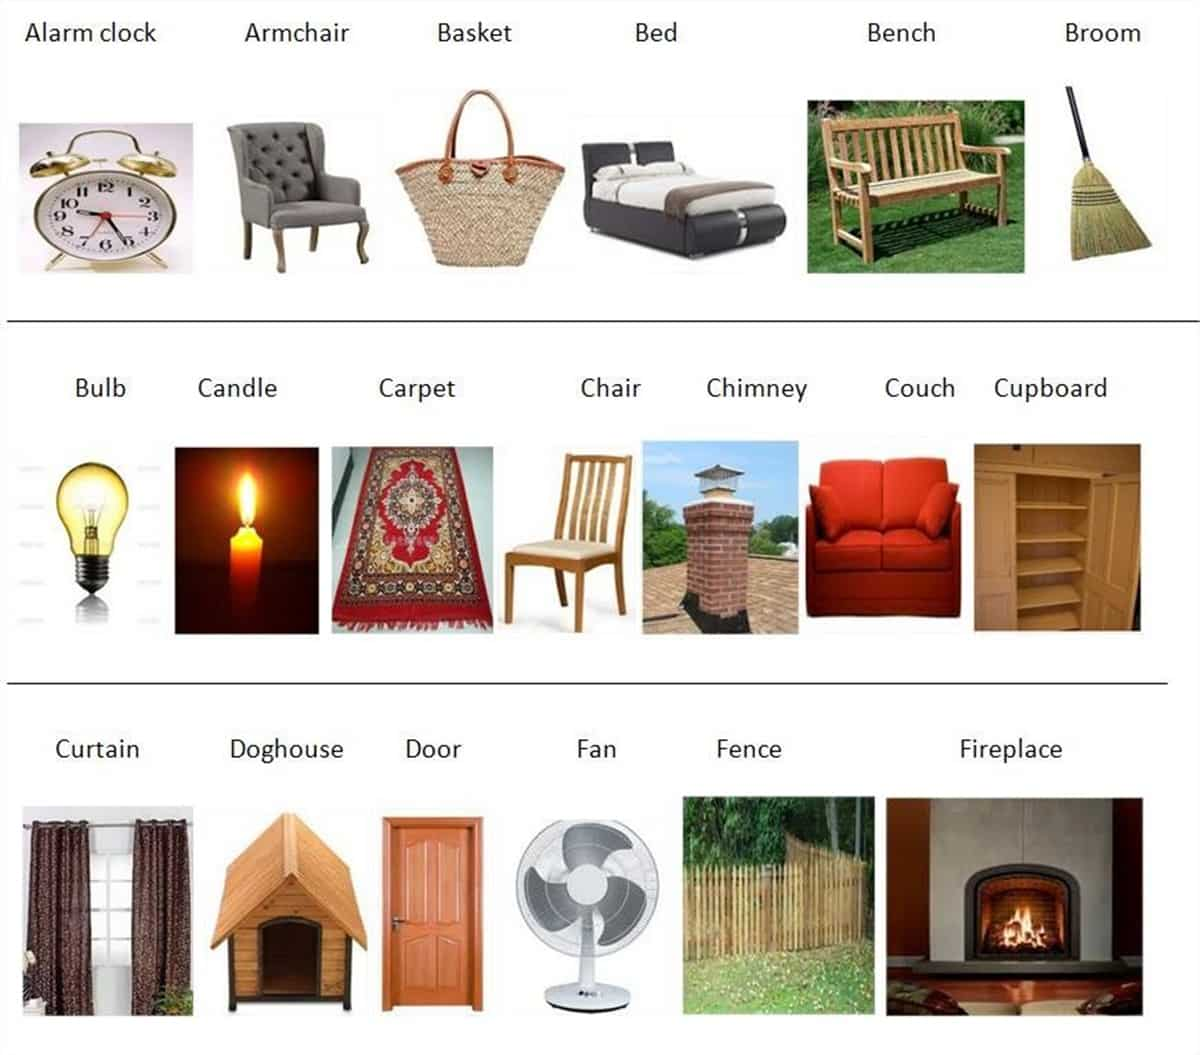 Furniture Vocabulary: 250+ Items Illustrated 16